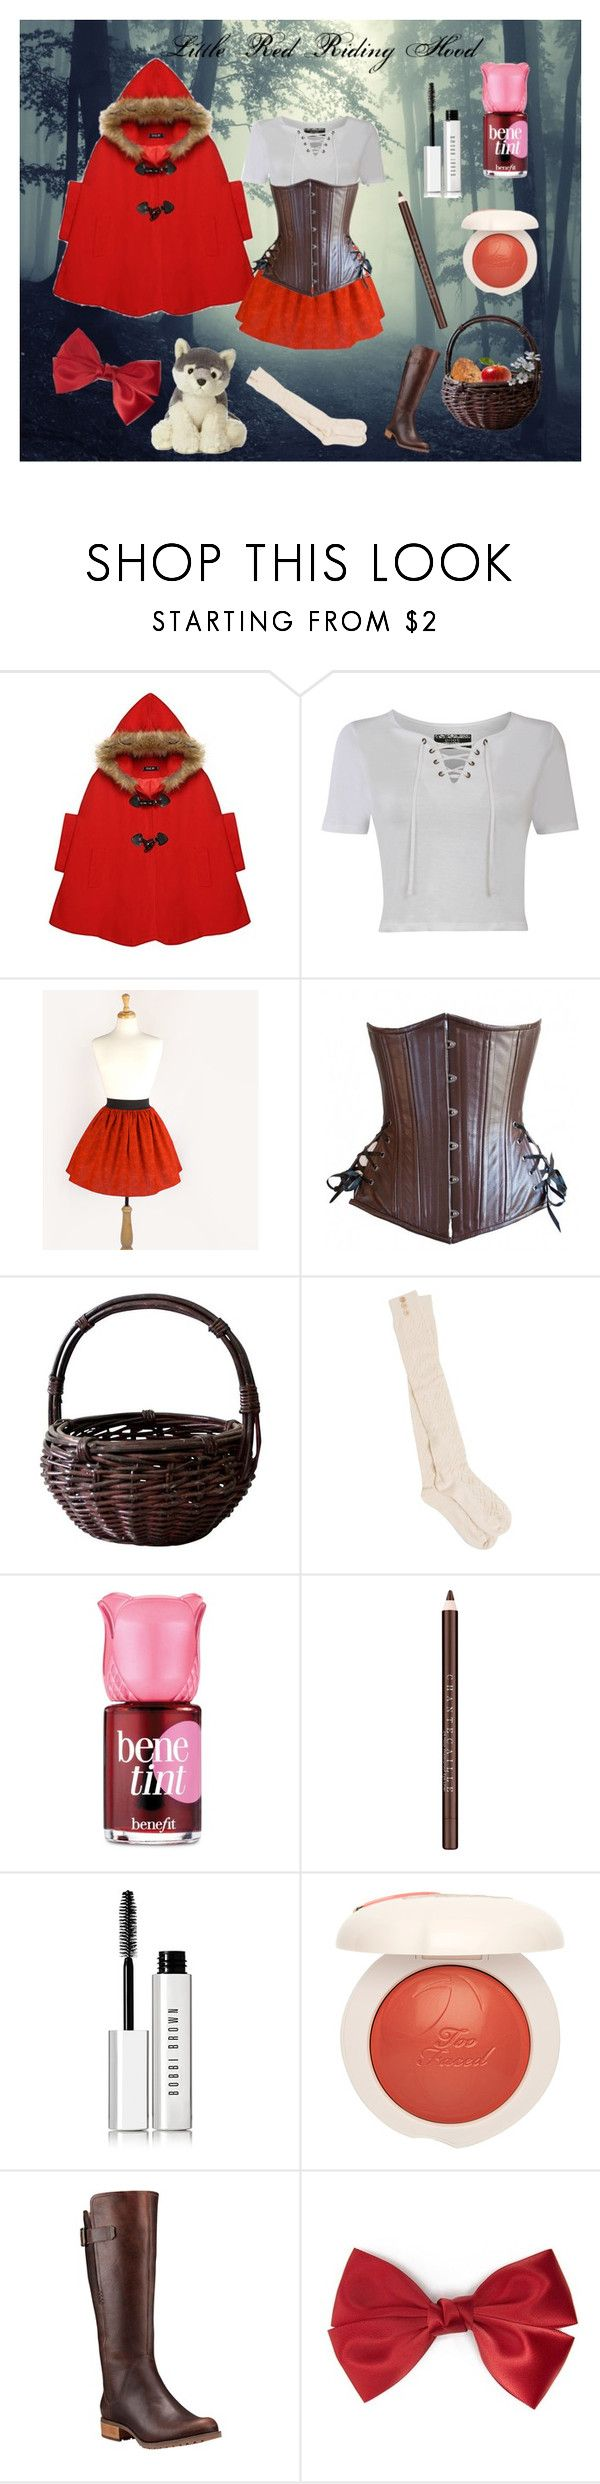 """""""Little Red Riding Hood costume"""" by timeless-trends on Polyvore featuring Pilot, PACT, Benefit, Chantecaille, Bobbi Brown Cosmetics, Timberland and Forever 21"""